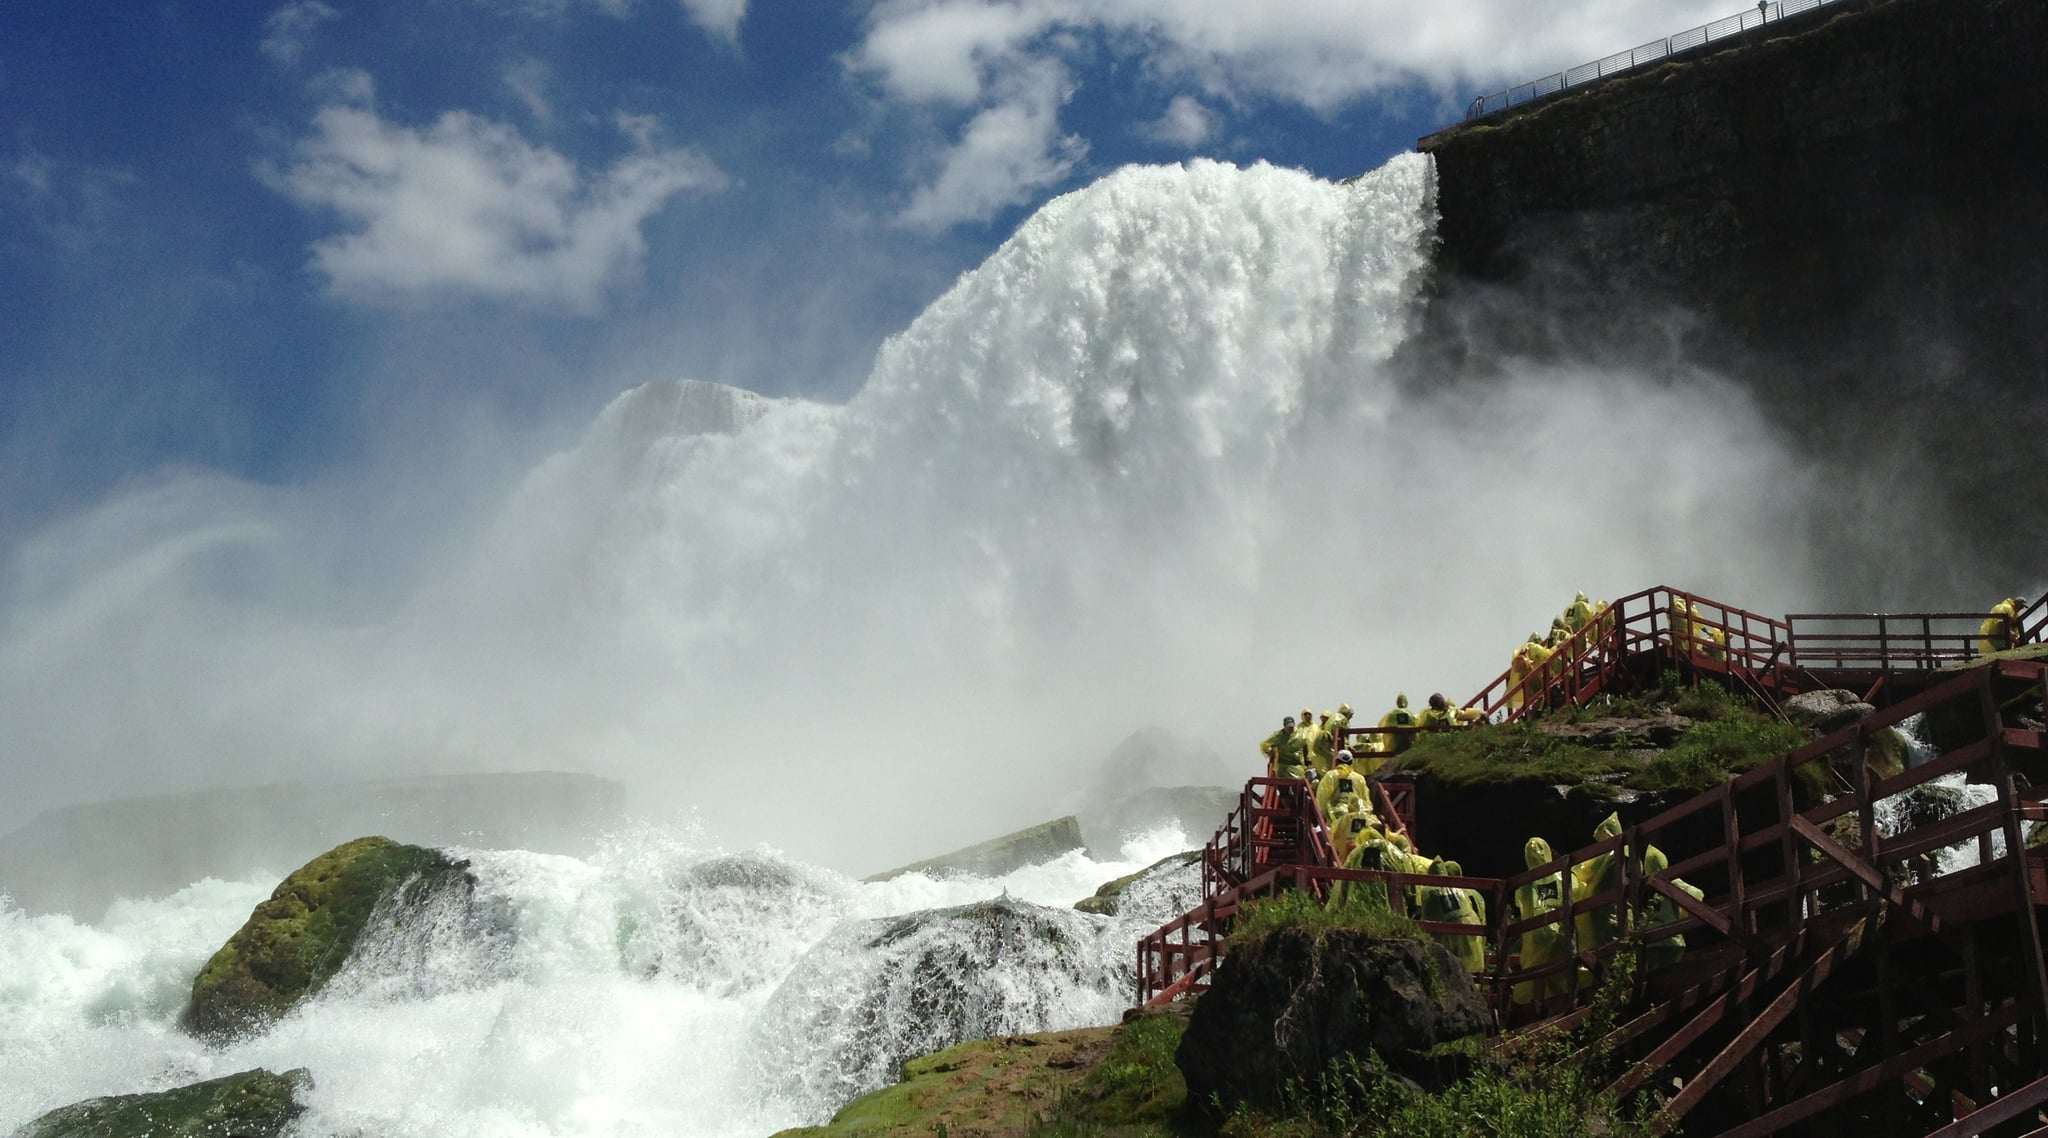 Cave Of The Winds Niagara Falls Ny Us Travelers Are Flocking To These 15 Popular Attractions Popsugar Smart Living Photo 10